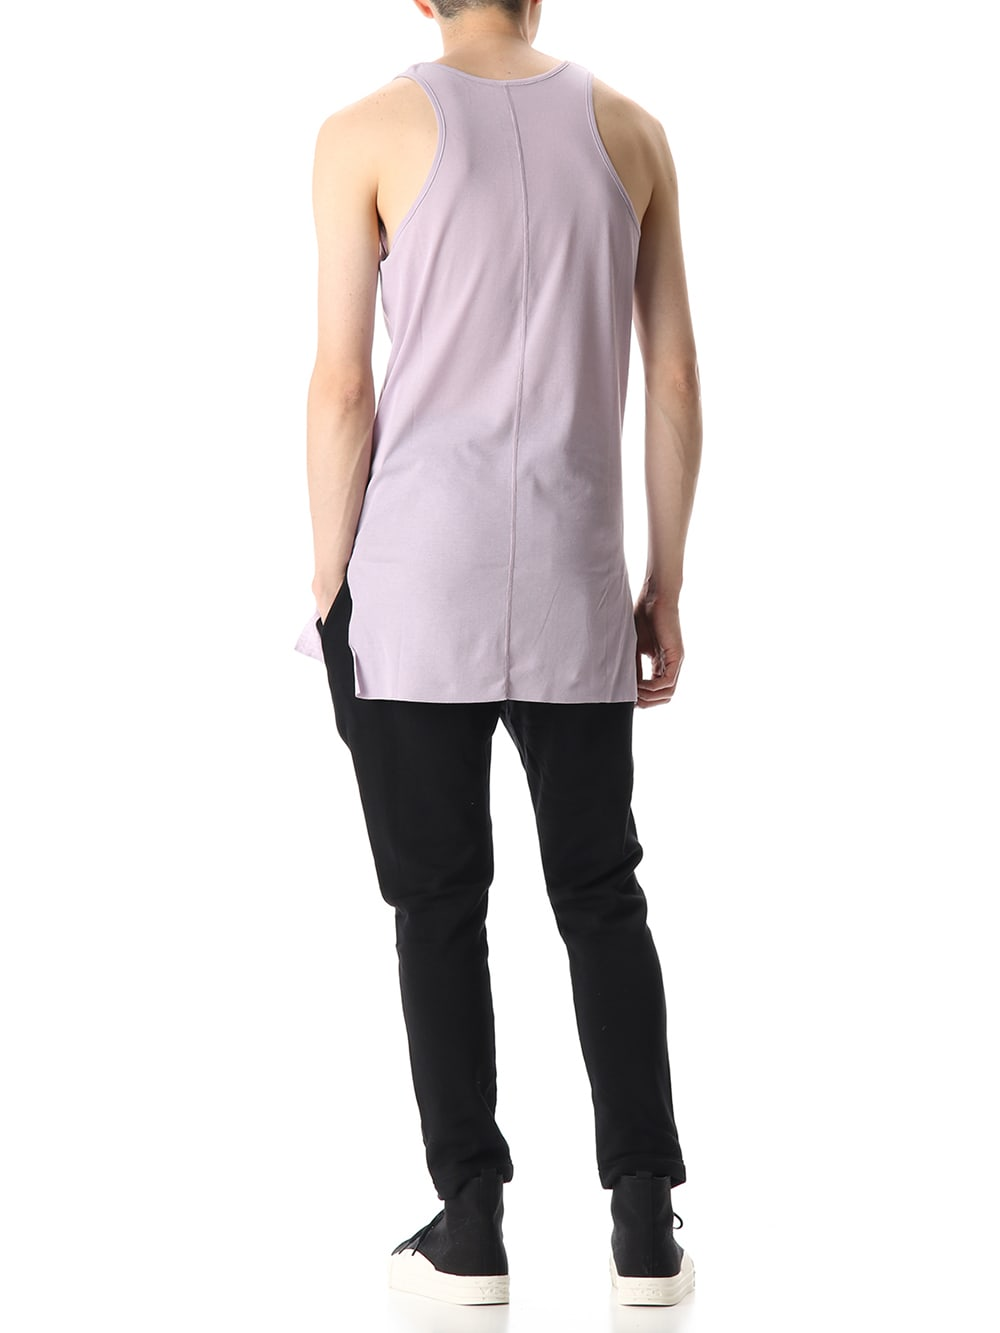 DIET BUTCHER SLIM SKIN 20SS Collection 3rd Delivery!! - 1-013